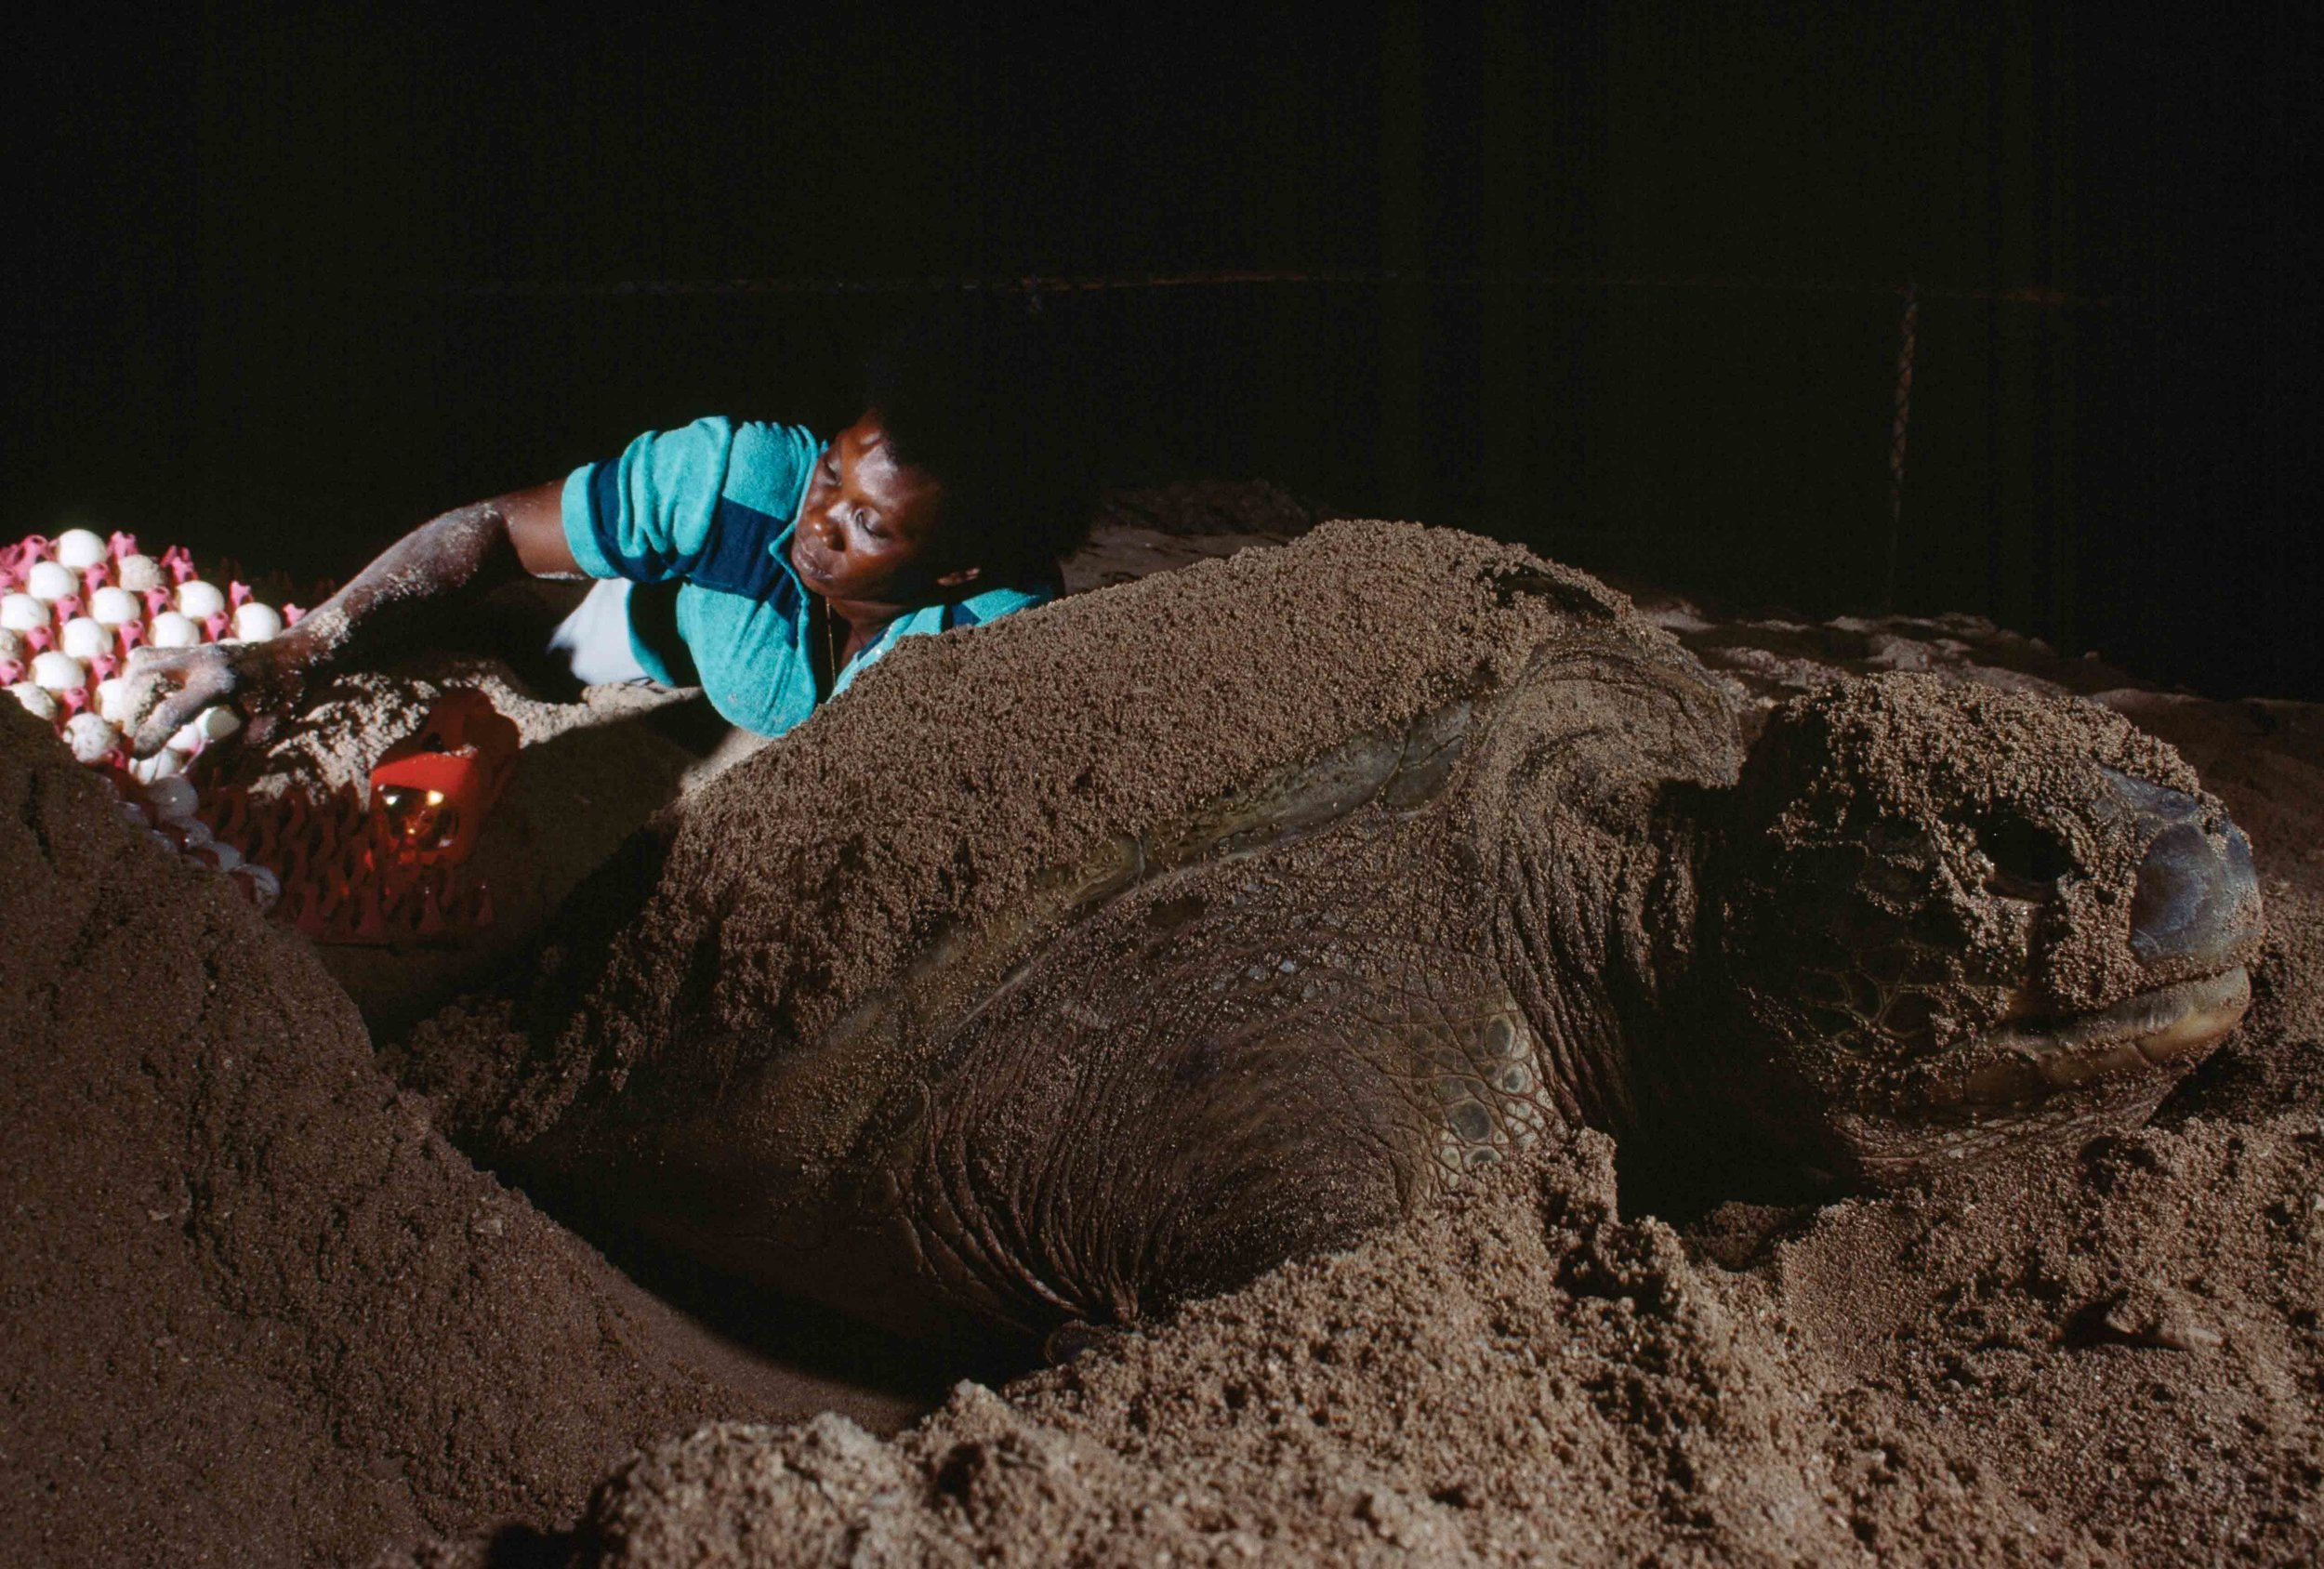 A breeder removes eggs from the nest of a green turtle at Cayman Turtle Farm. © DAVID DOUBILET